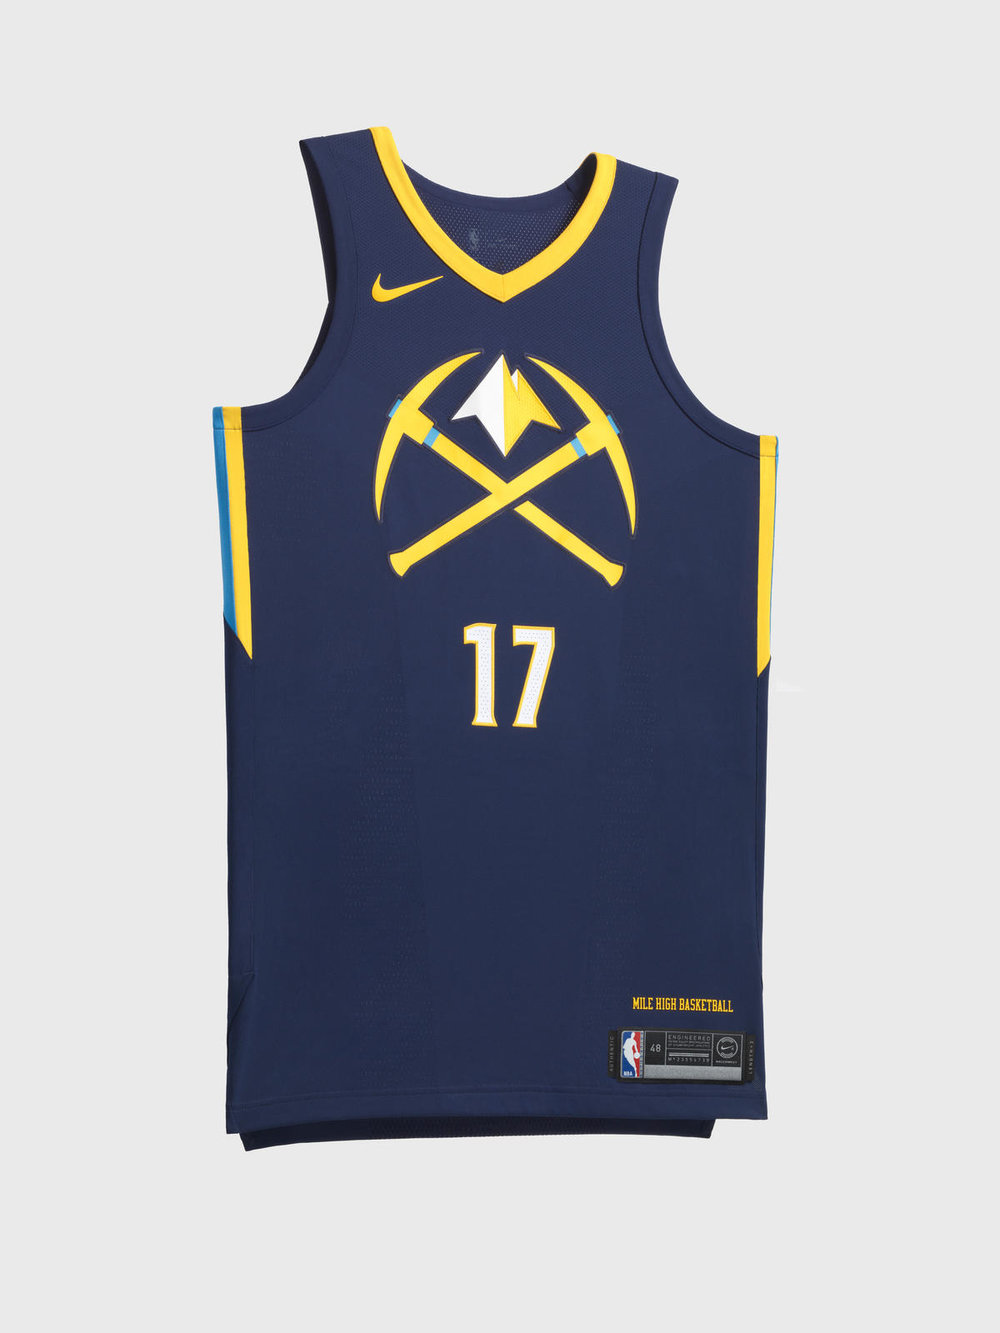 Nike_NBA_City_Edition_Uniform_Denver_Nuggets_0126_native_1600.jpeg